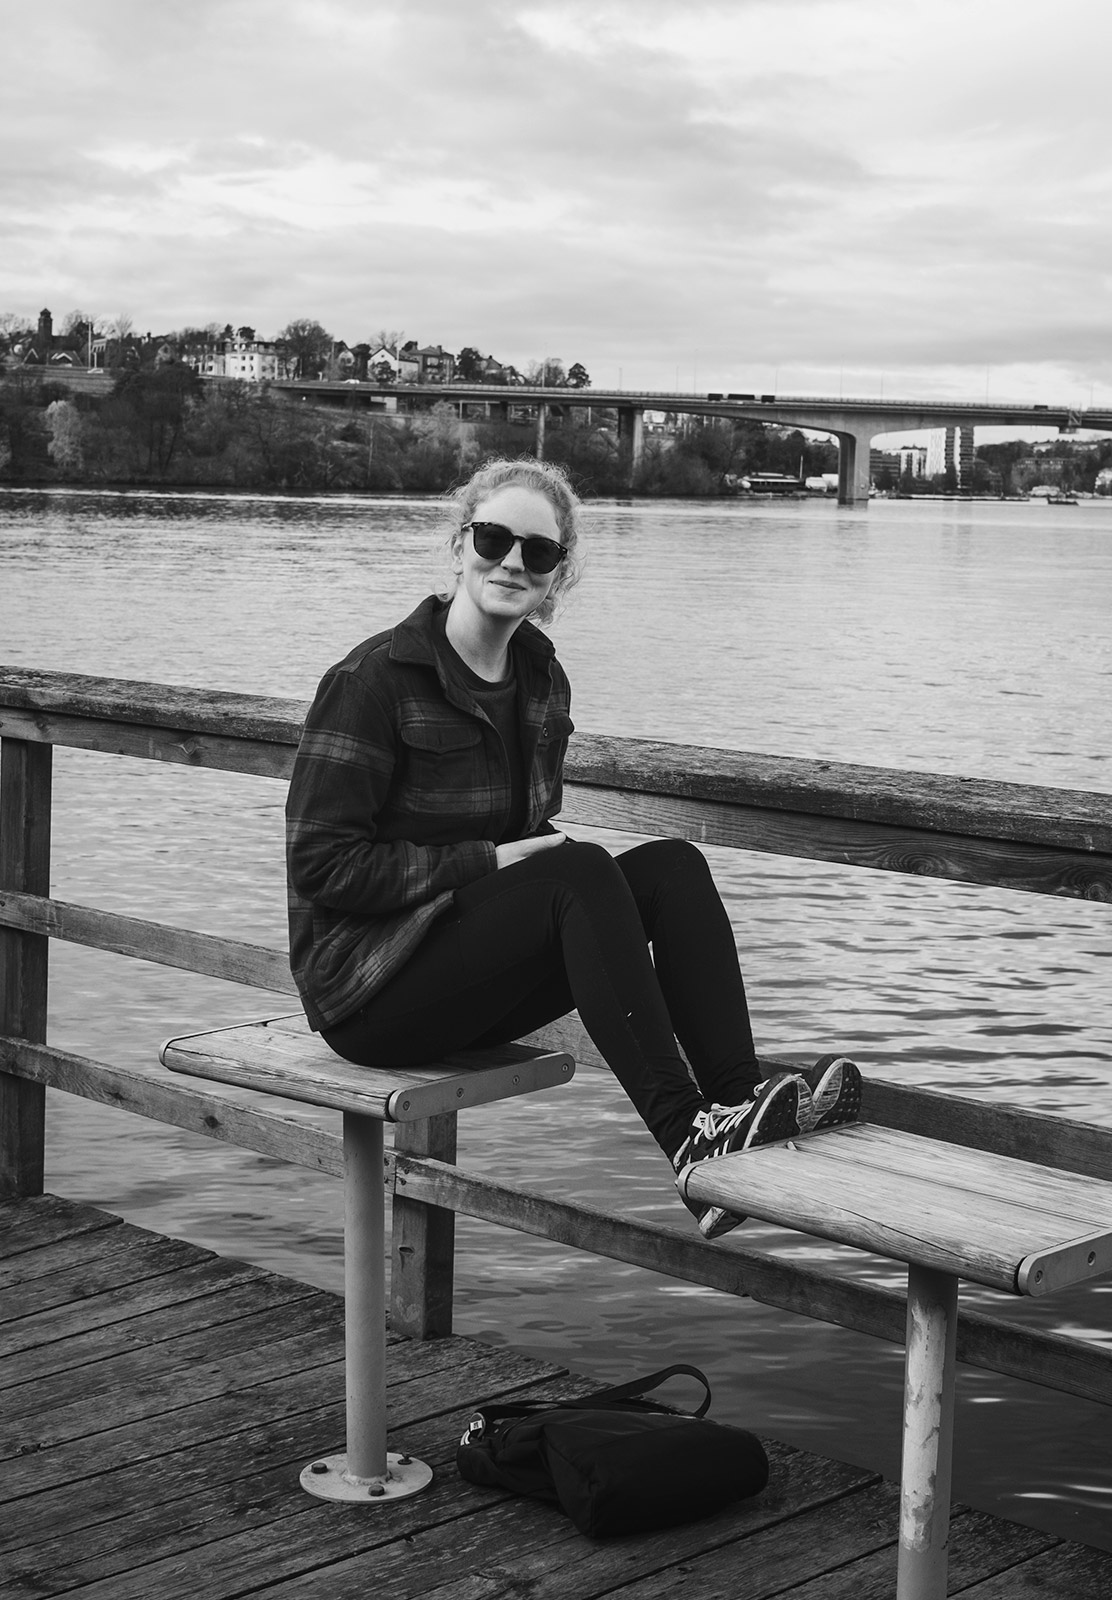 Woman sat on bench